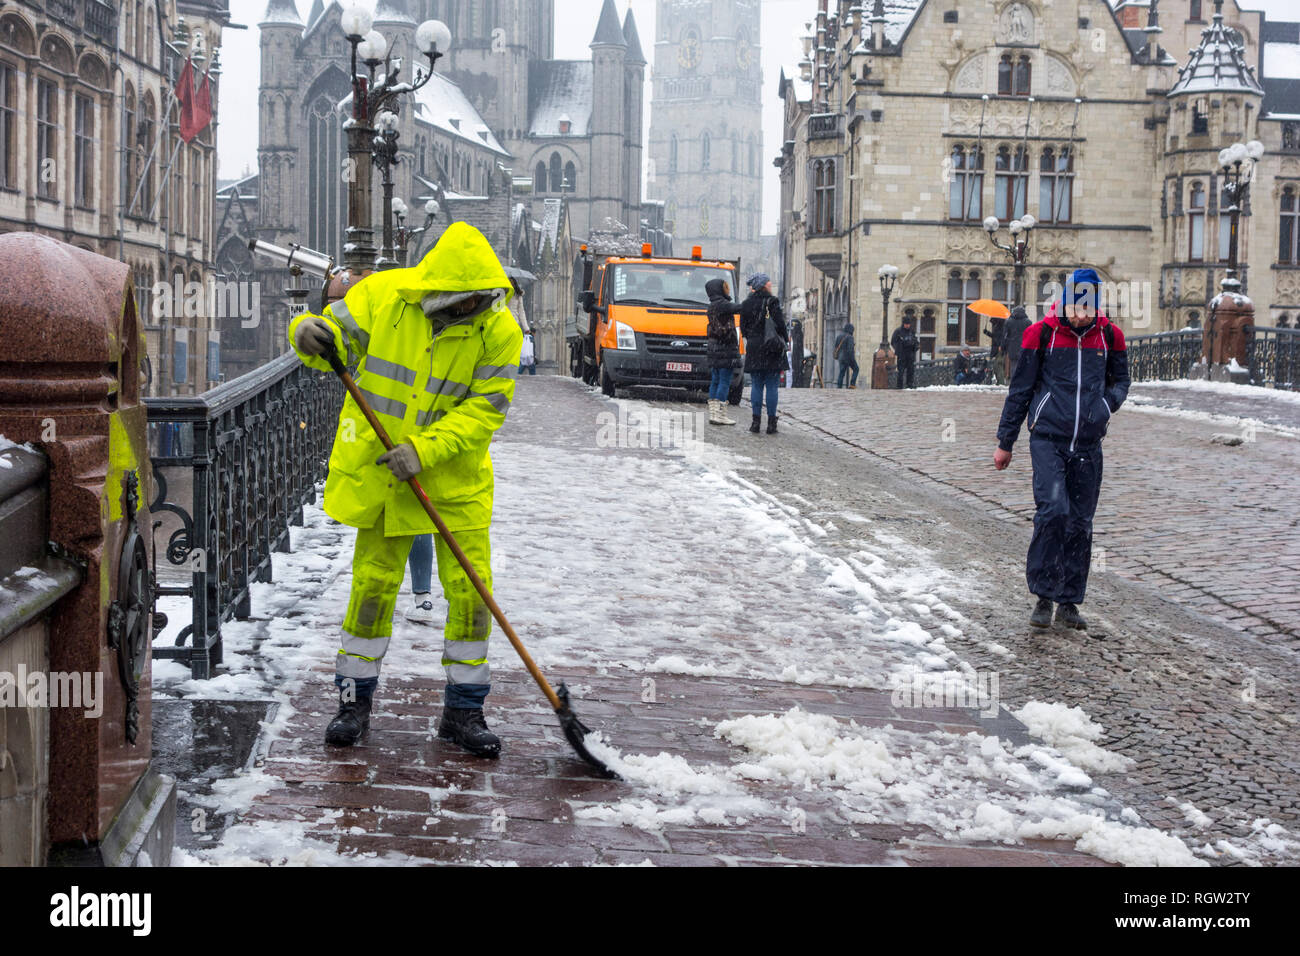 Pedestrians on slippery road and city worker cleaning pavement during sleet / snow shower in winter in the city Ghent, East Flanders, Belgium - Stock Image